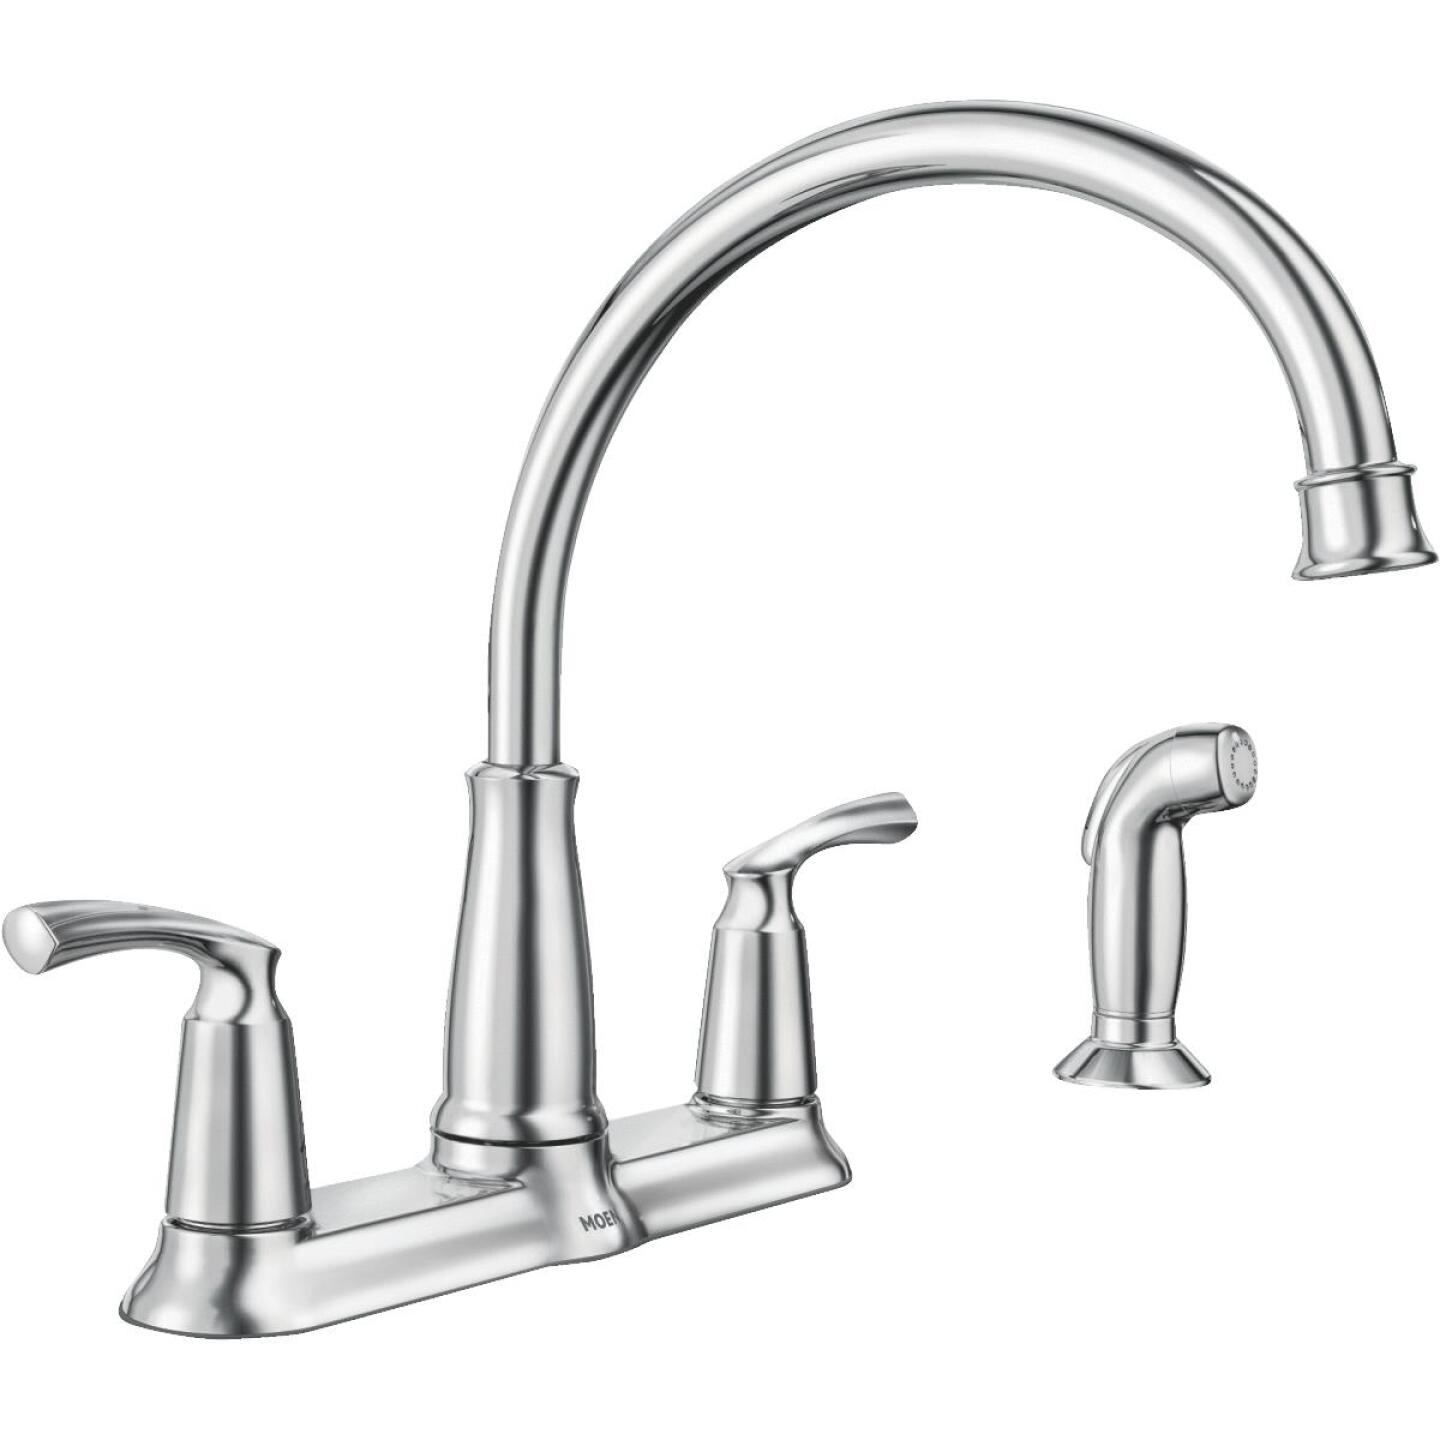 Moen Bexley Dual Handle Lever Kitchen Faucet with Side Spray, Chrome Image 1